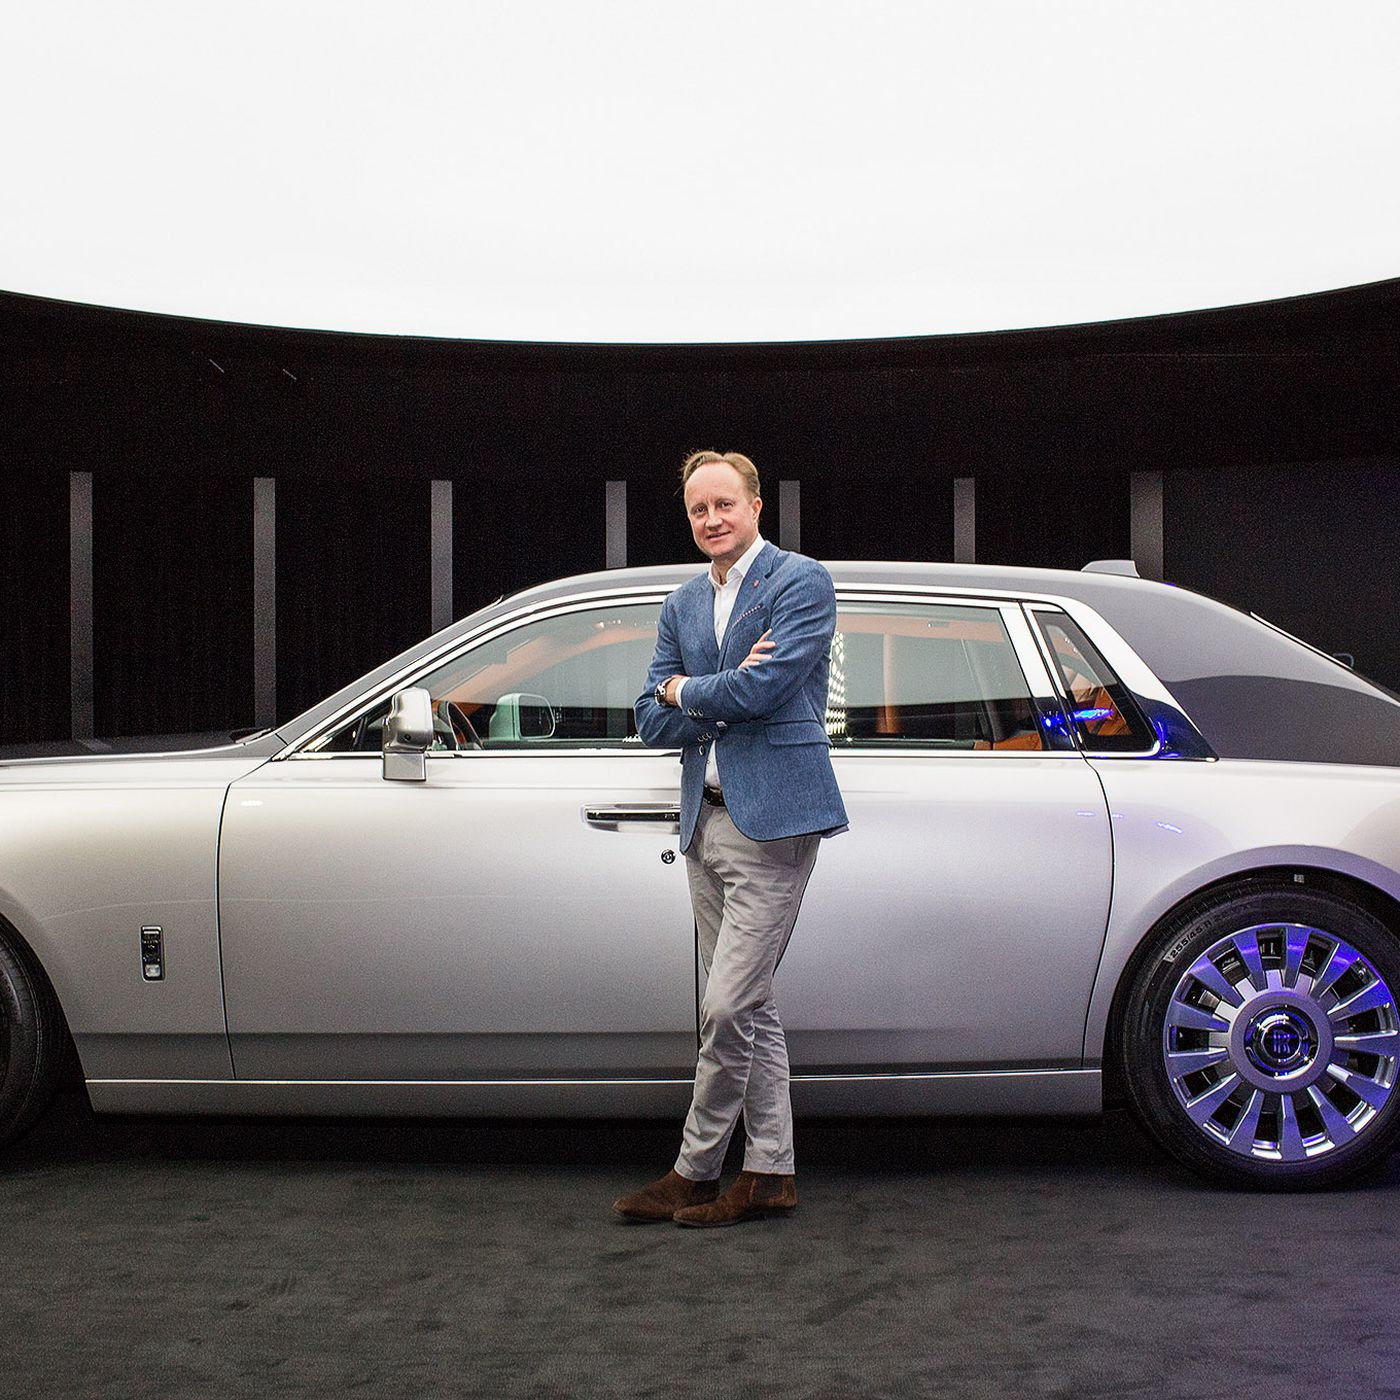 The Rolls Royce Phantom Design Opens Doors For An Electric Future The Verge